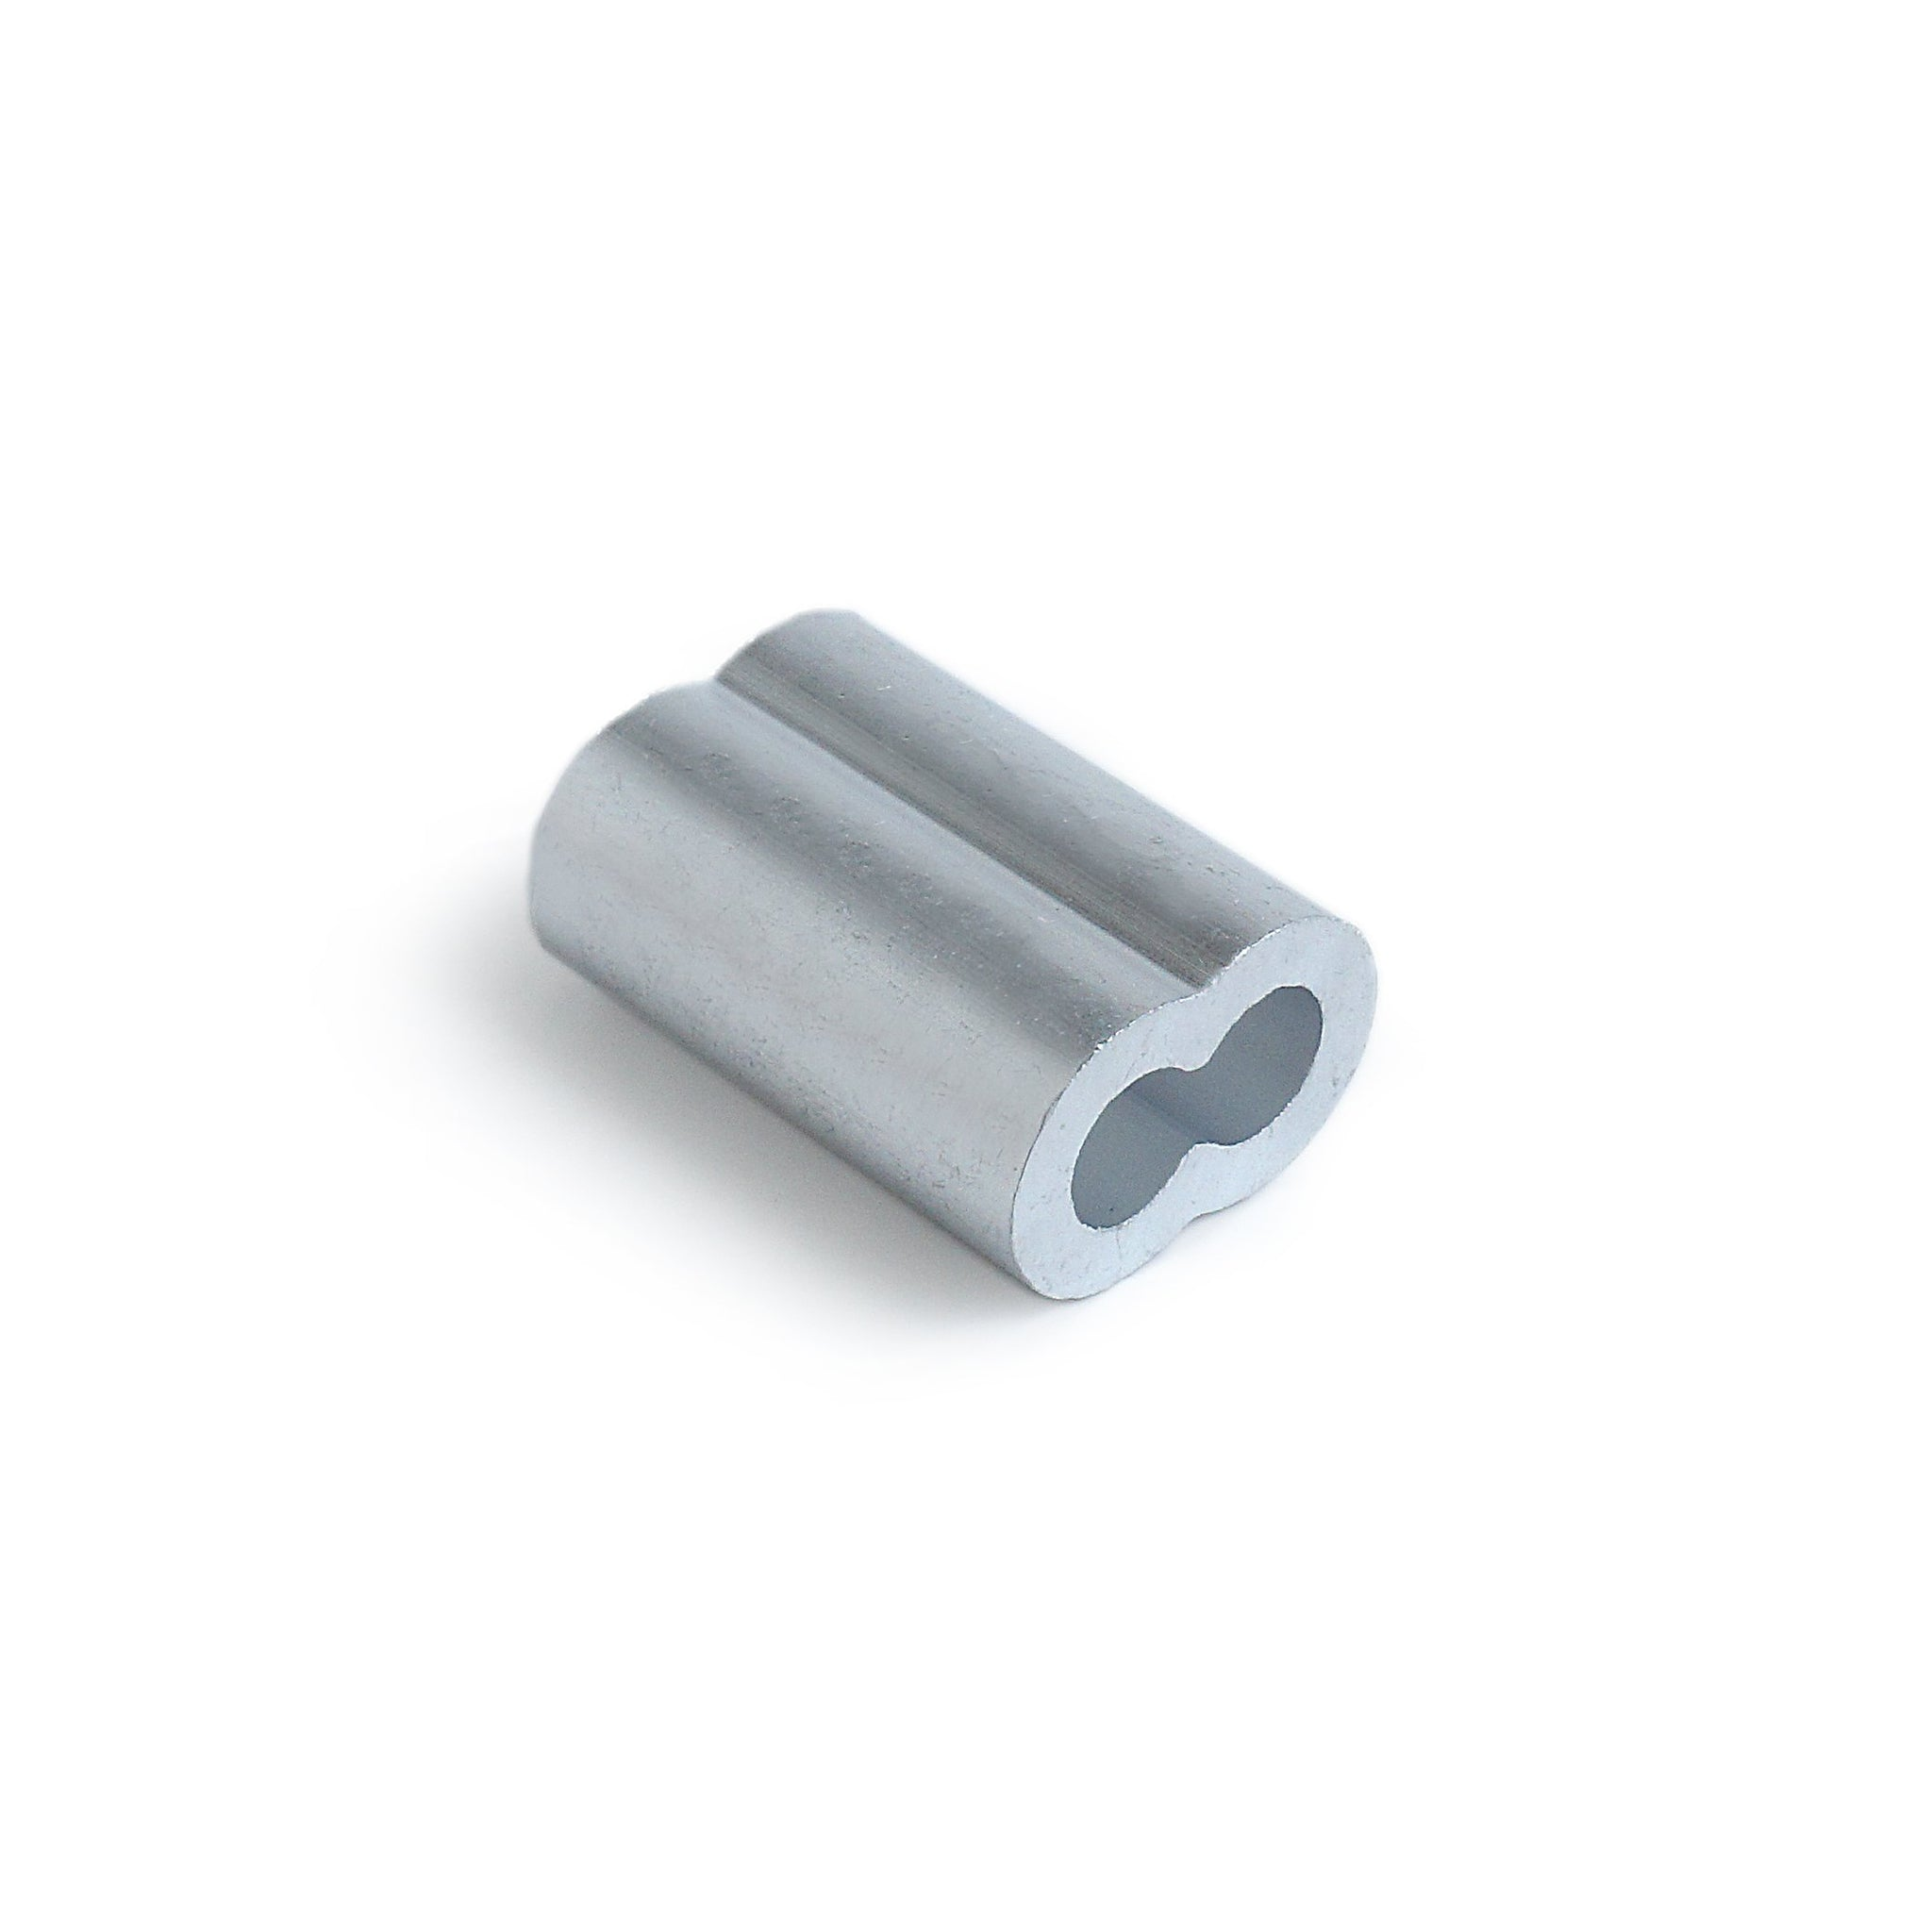 AS-6.0 (6mm Alloy swage for wire rope)